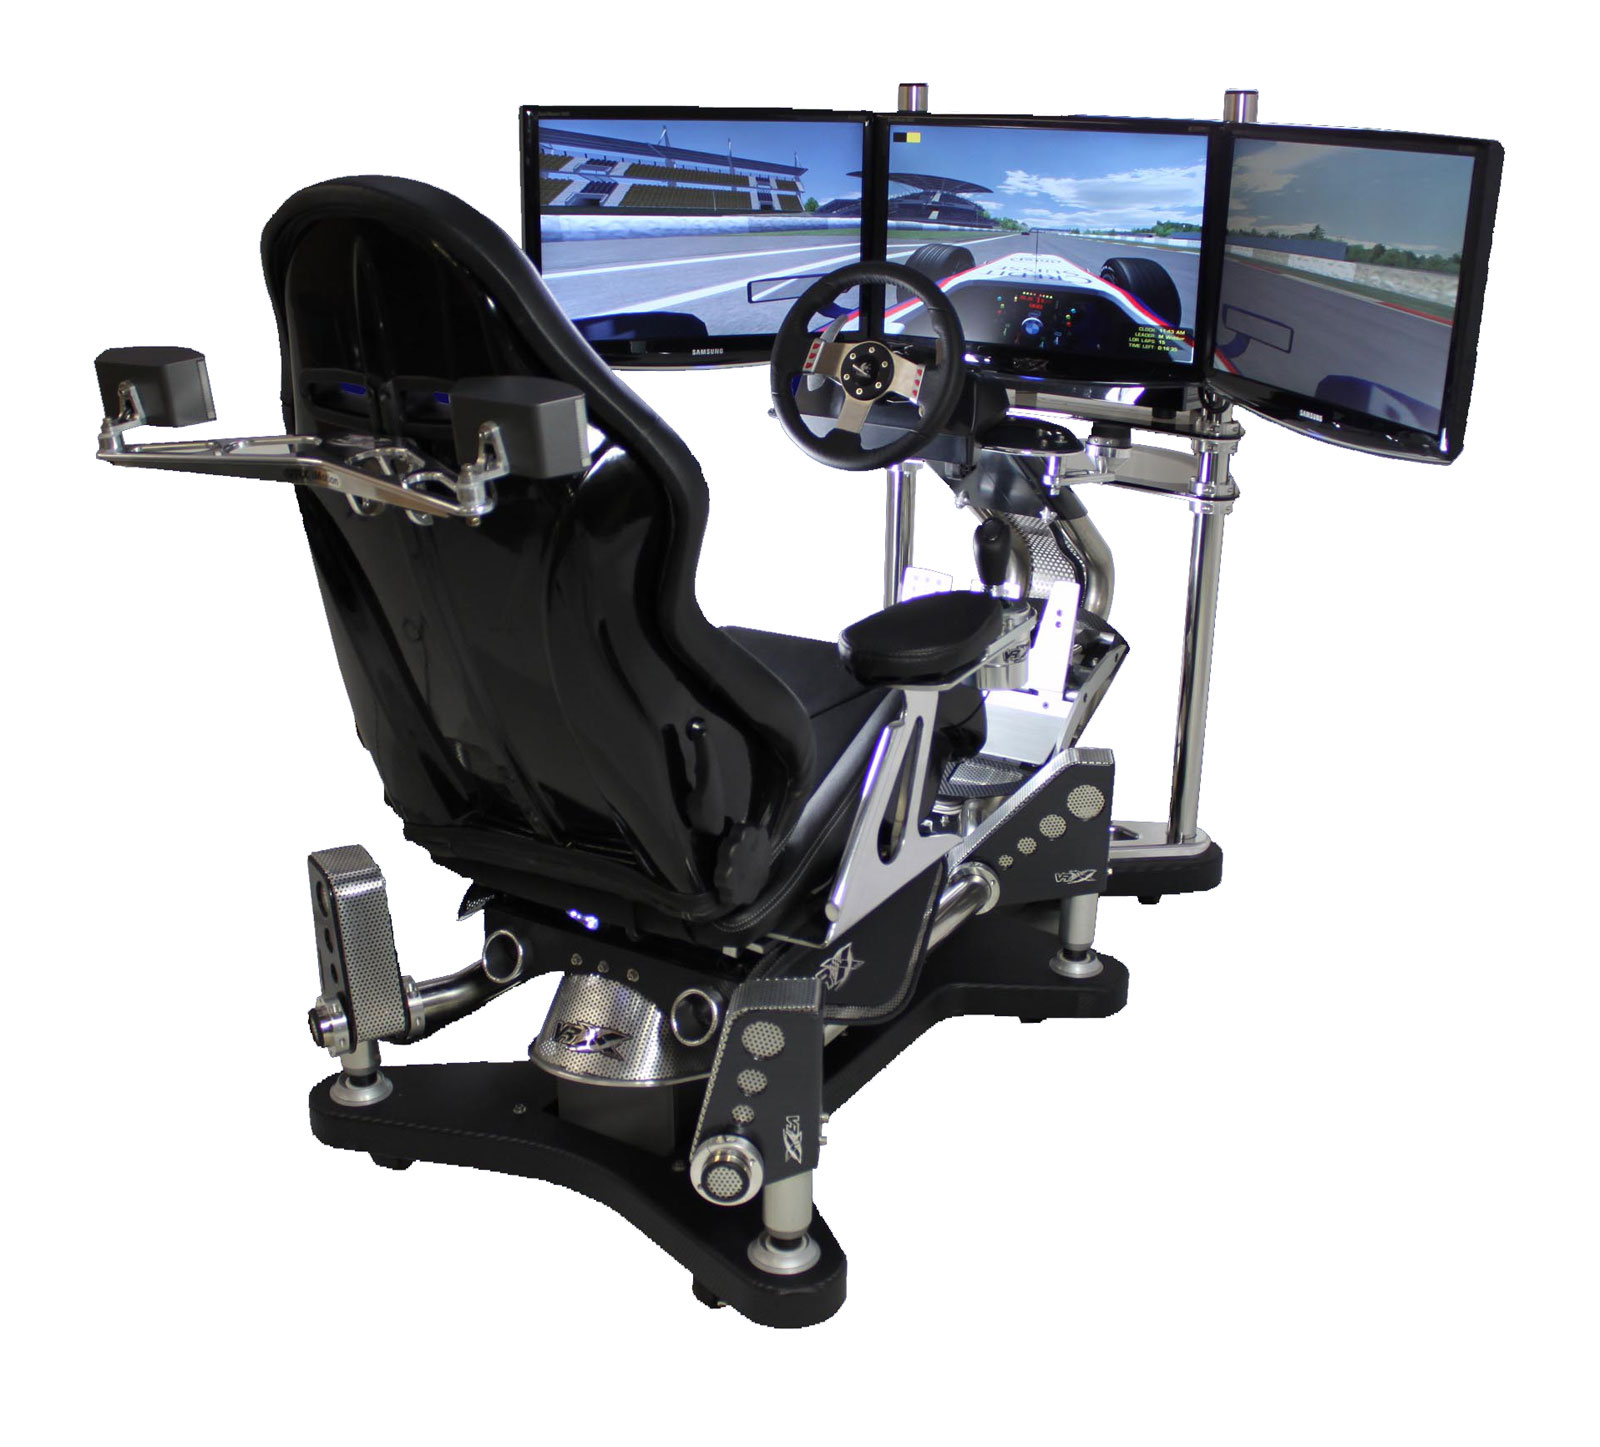 VRX iMotion 3D Full Motion Racing Simulator add a Whole New Level of